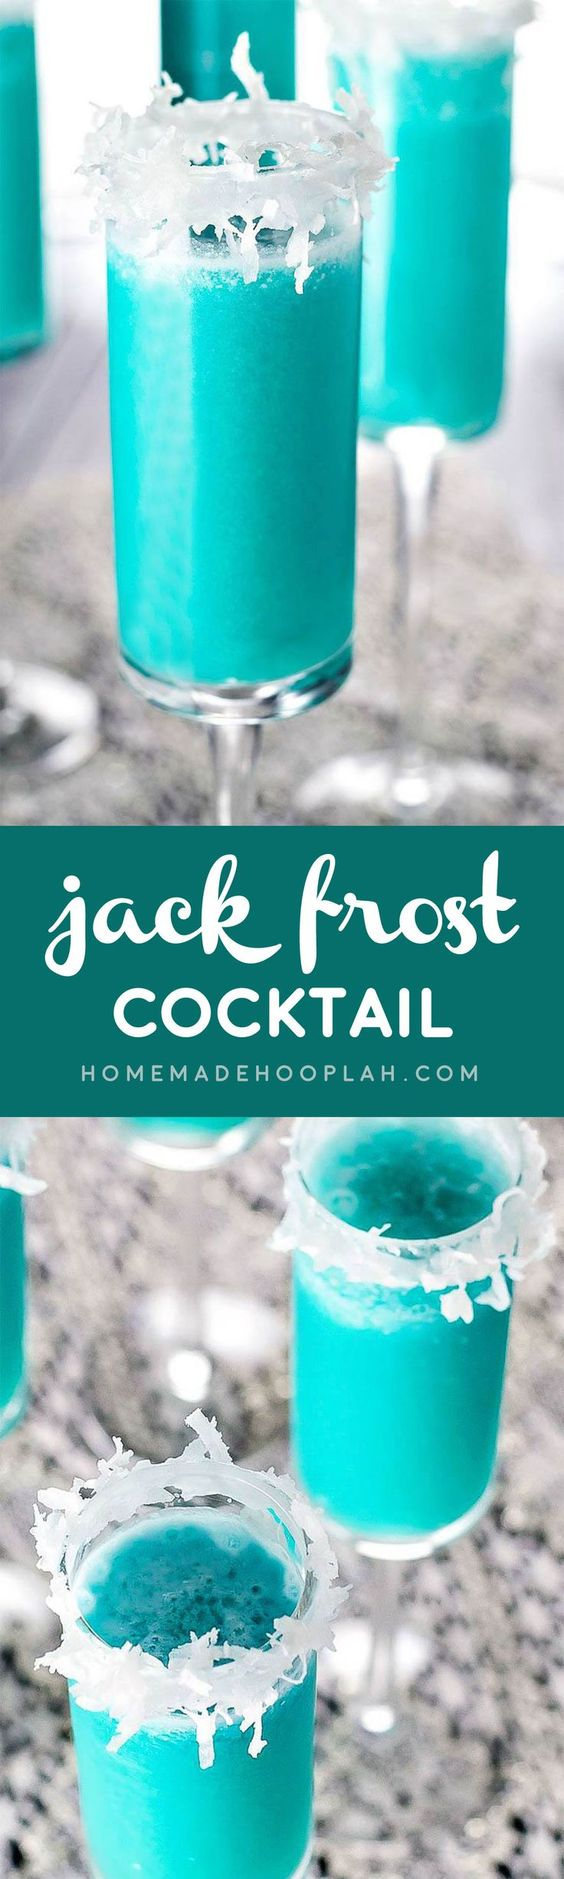 Jack Frost Cocktail! Winter's version of the piña colada! Blue curacao and shredded coconut help give this drink it's wintry flair. | http://HomemadeHooplah.com: